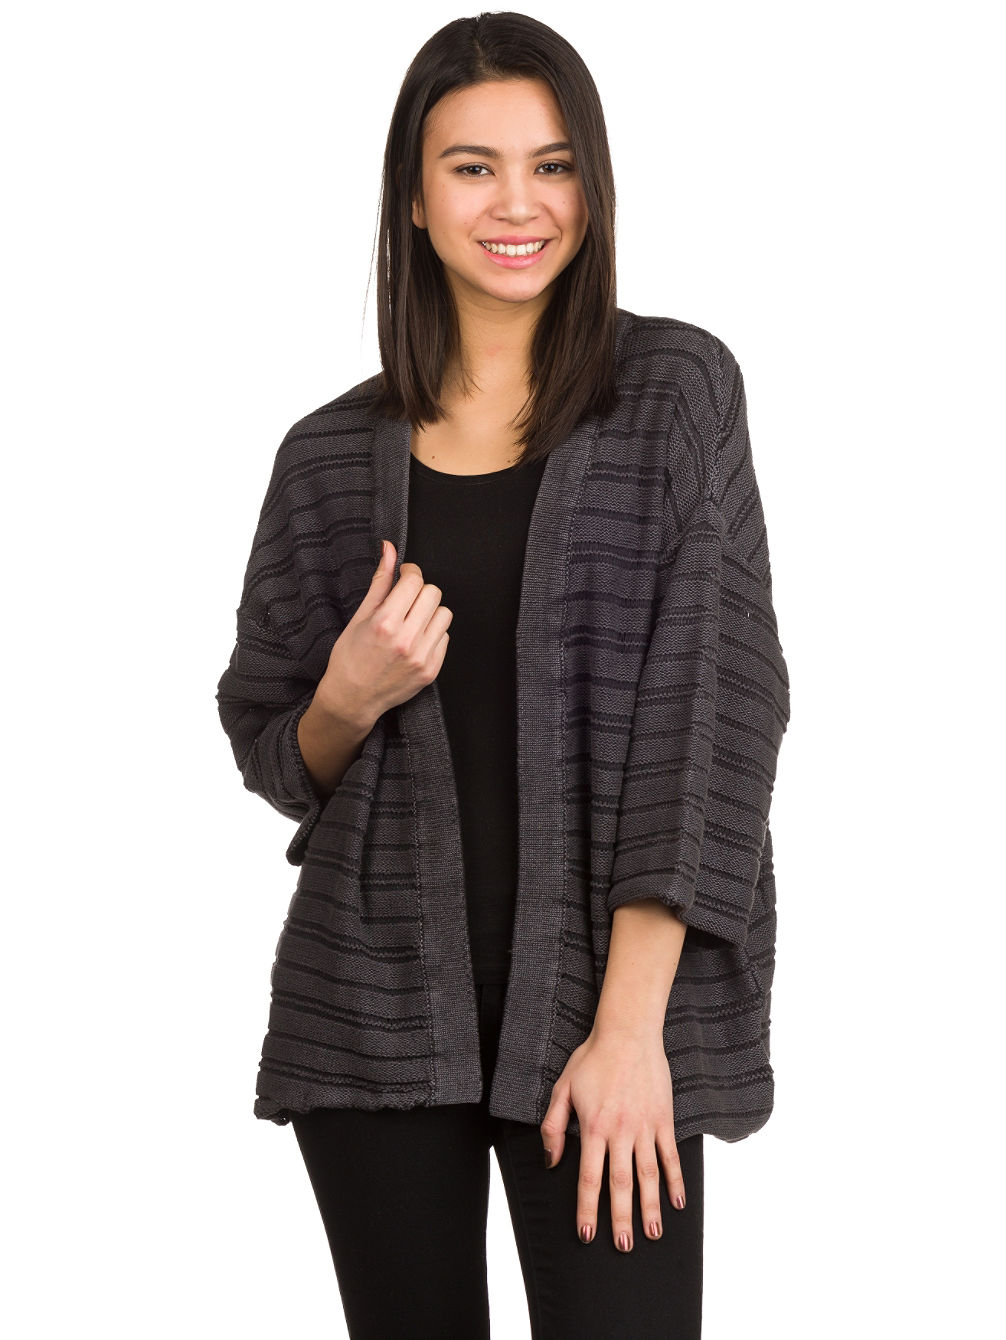 Stated Strickjacke